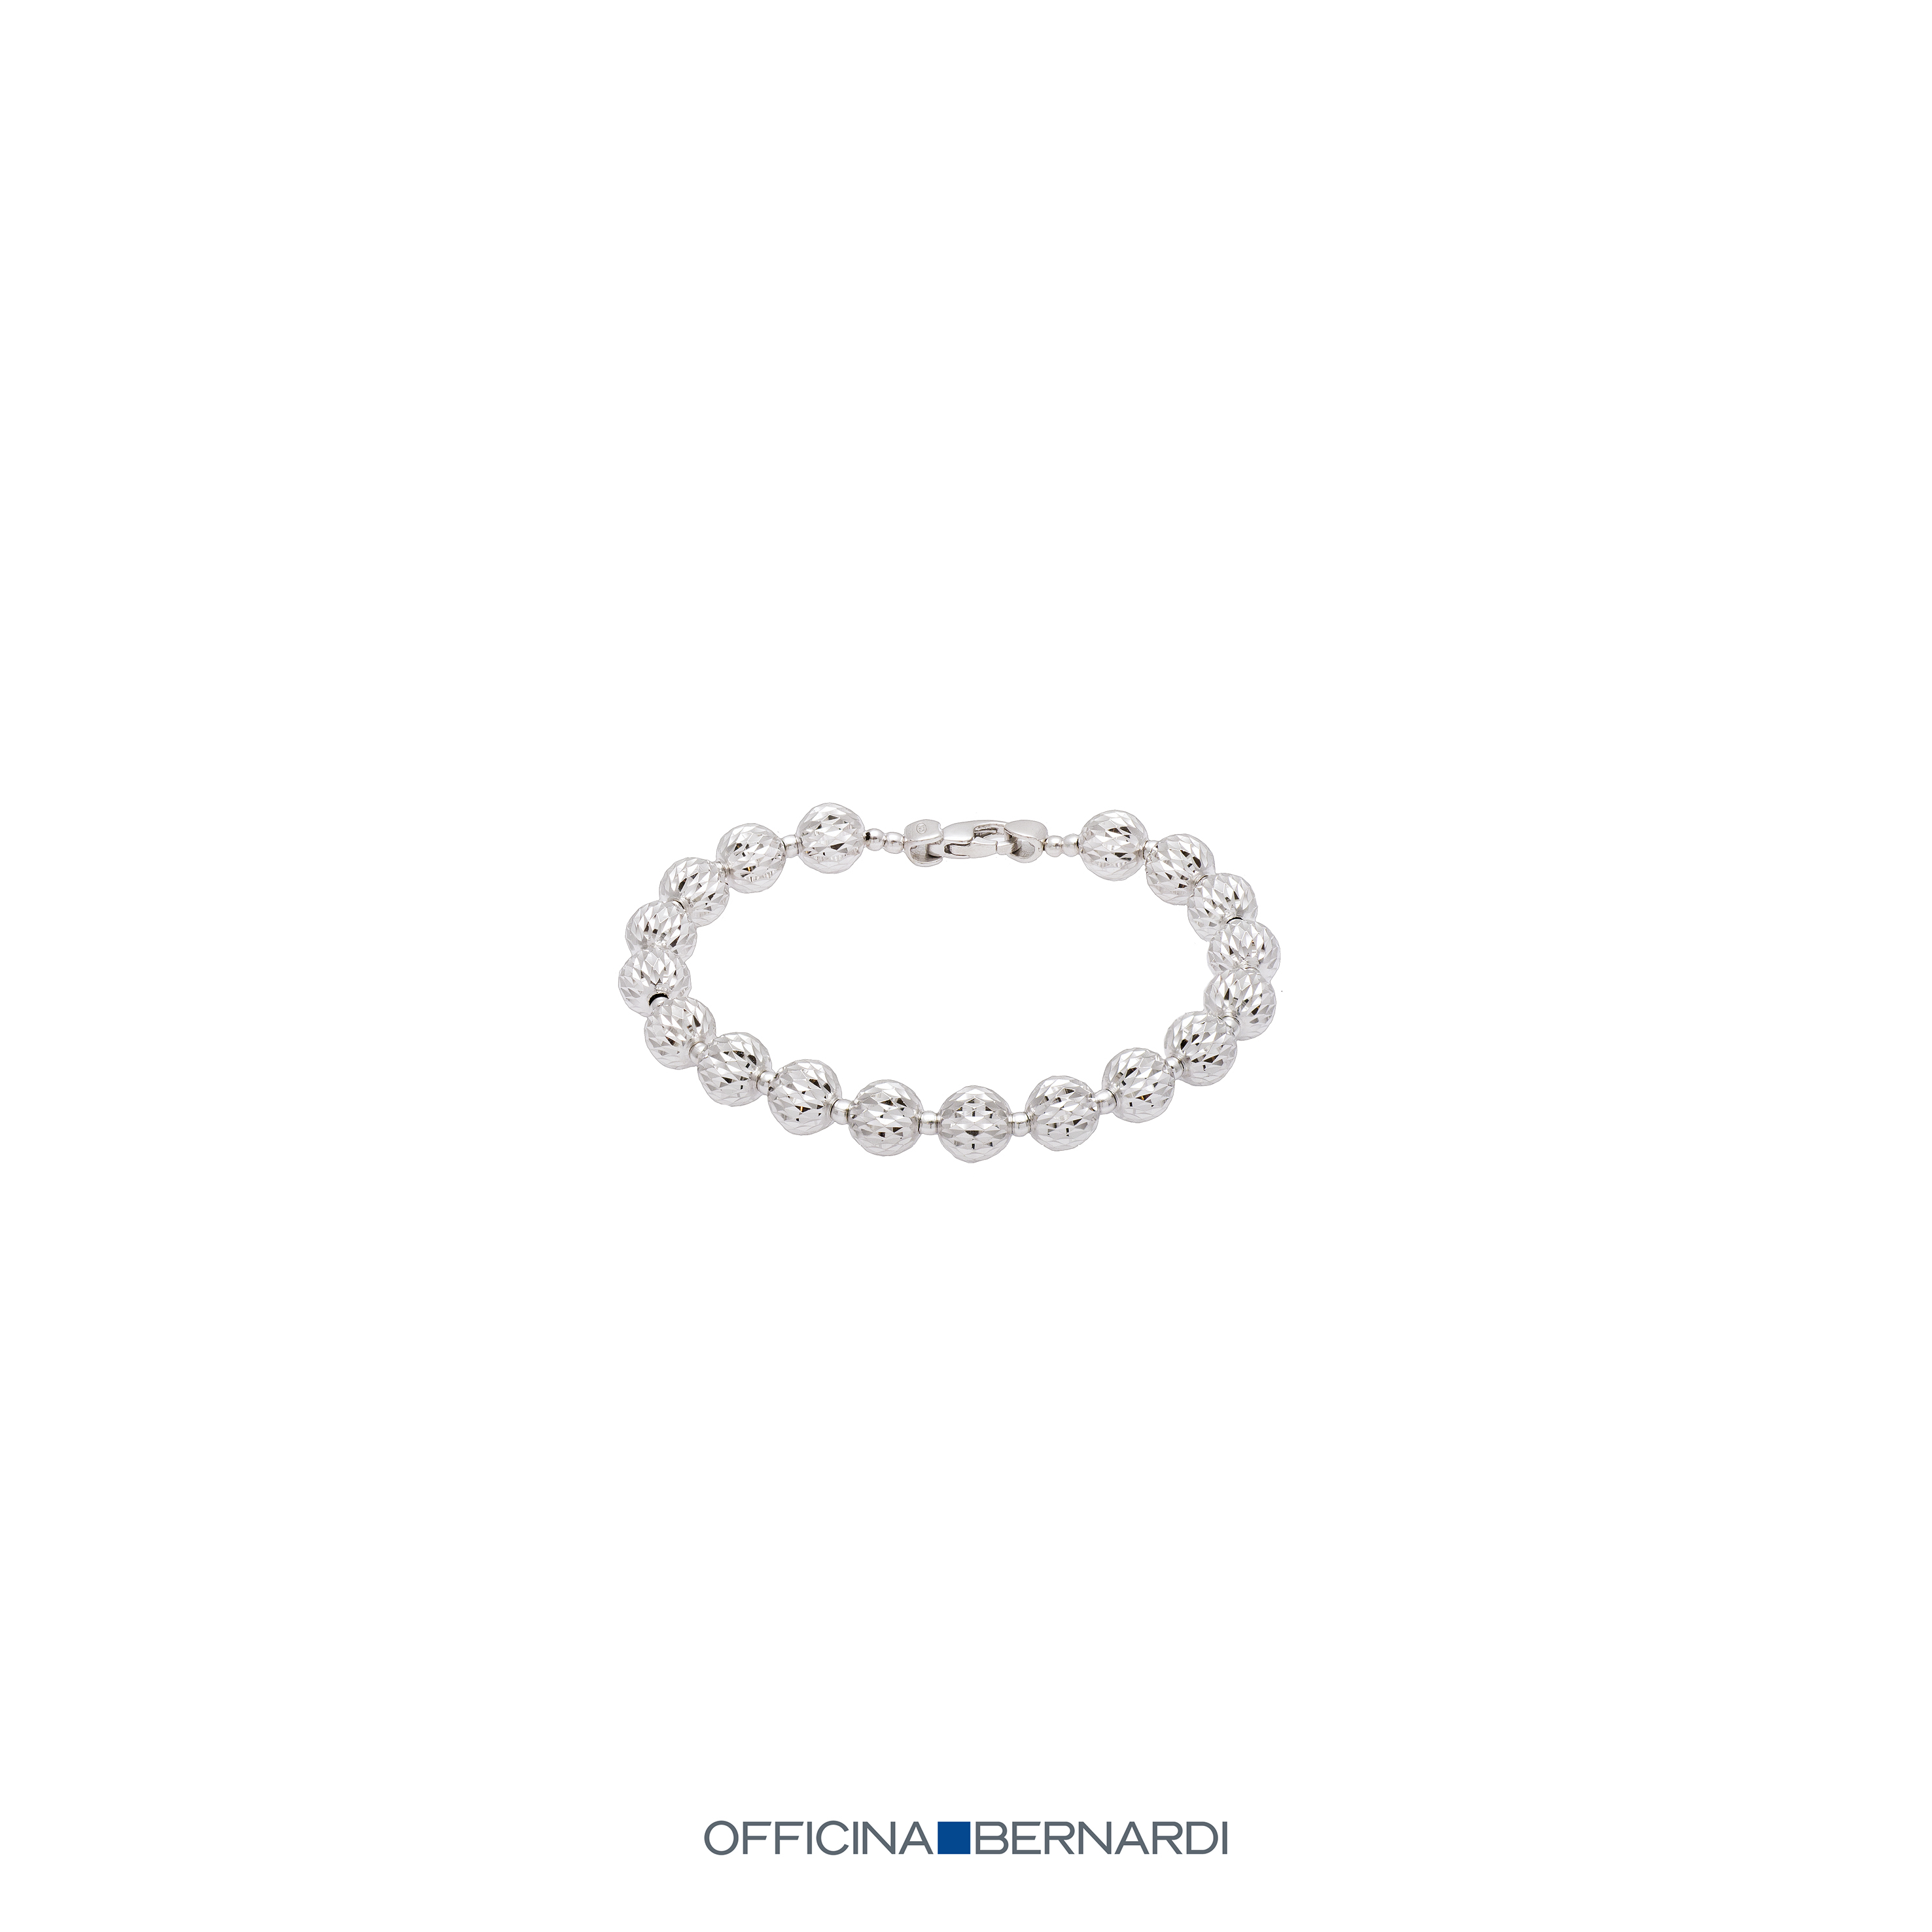 8mm diamond cut beaded bracelet, 7 inches, sterling silver with platinum overlay